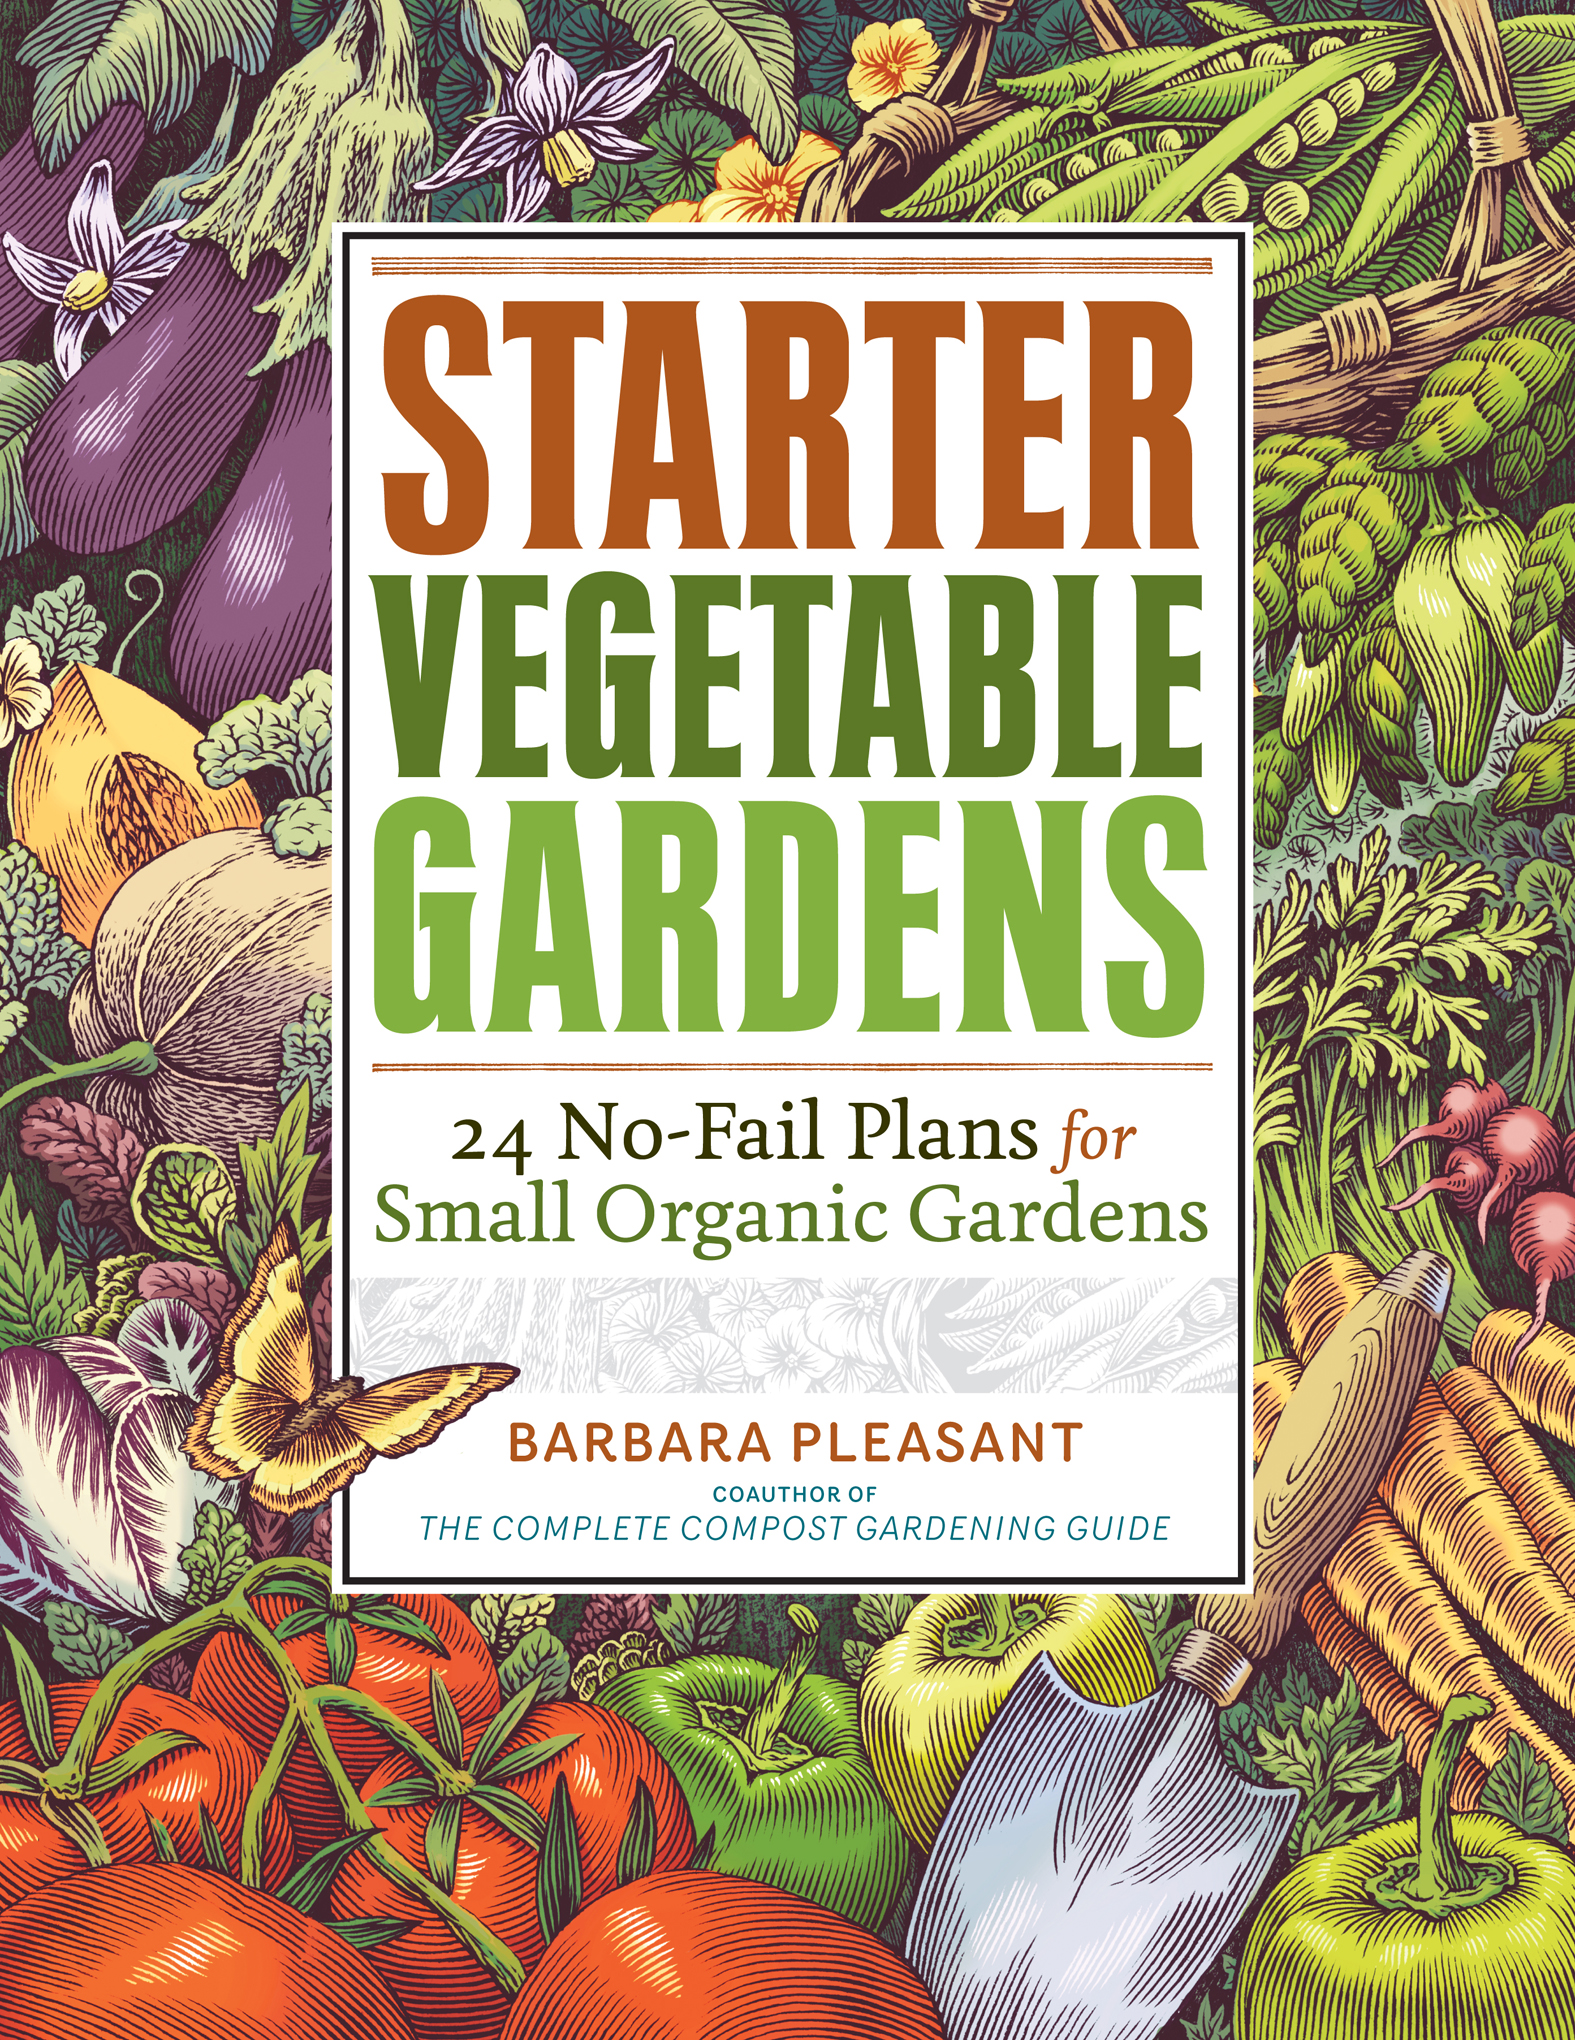 Starter Vegetable Gardens 24 No-Fail Plans for Small Organic Gardens